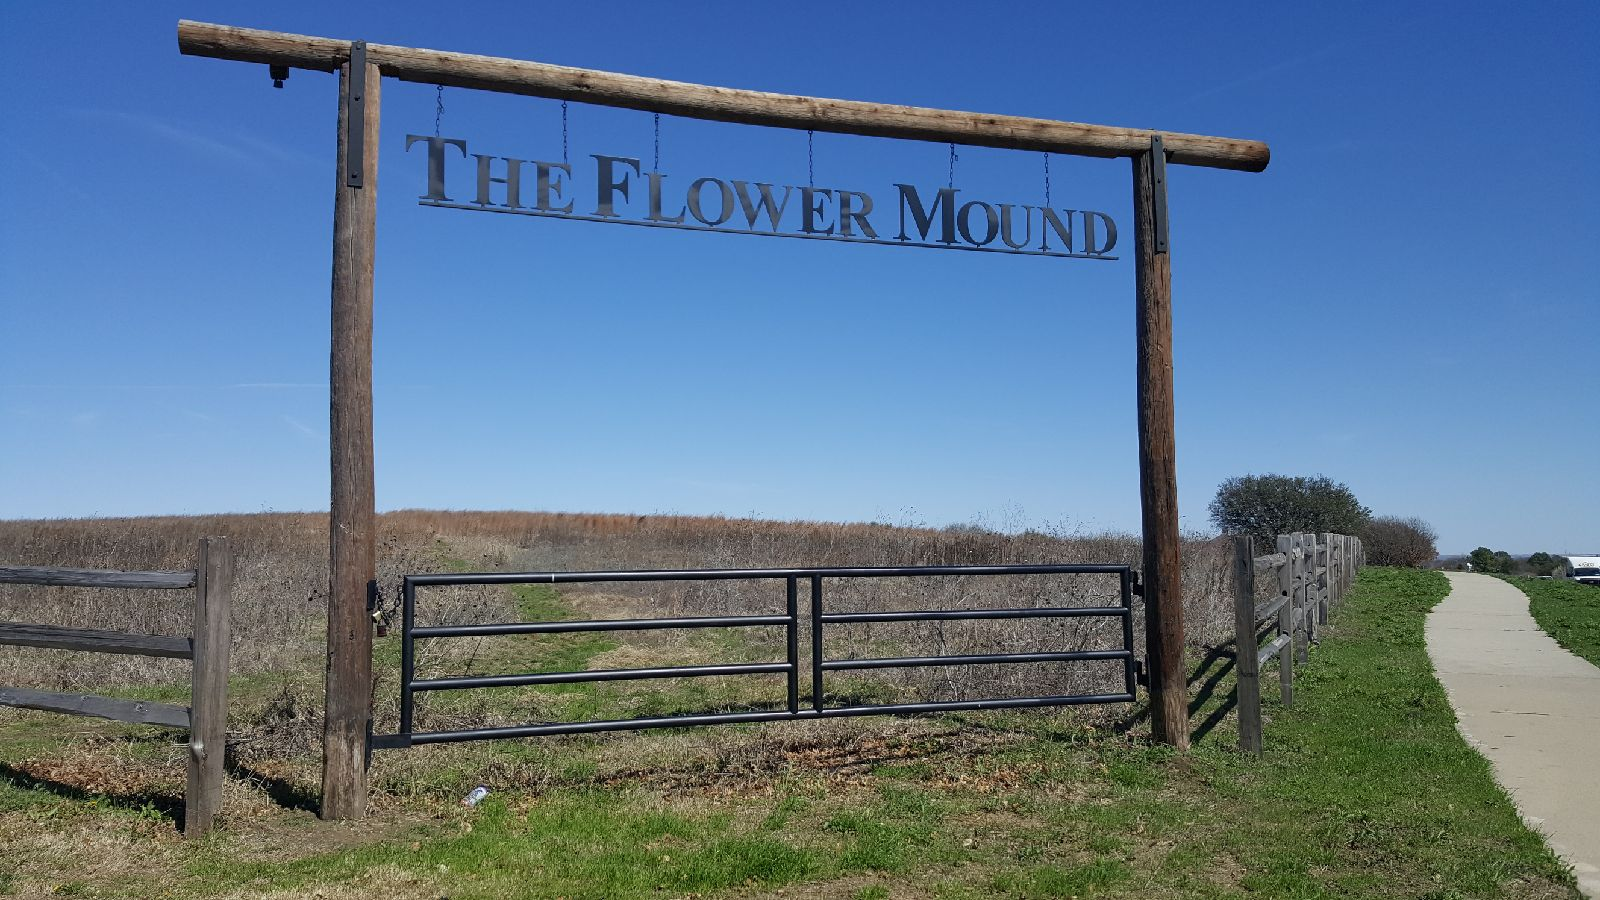 The entrance to The Flower Mound with the recently updated farm fencing.  Photo taken in March 2018.